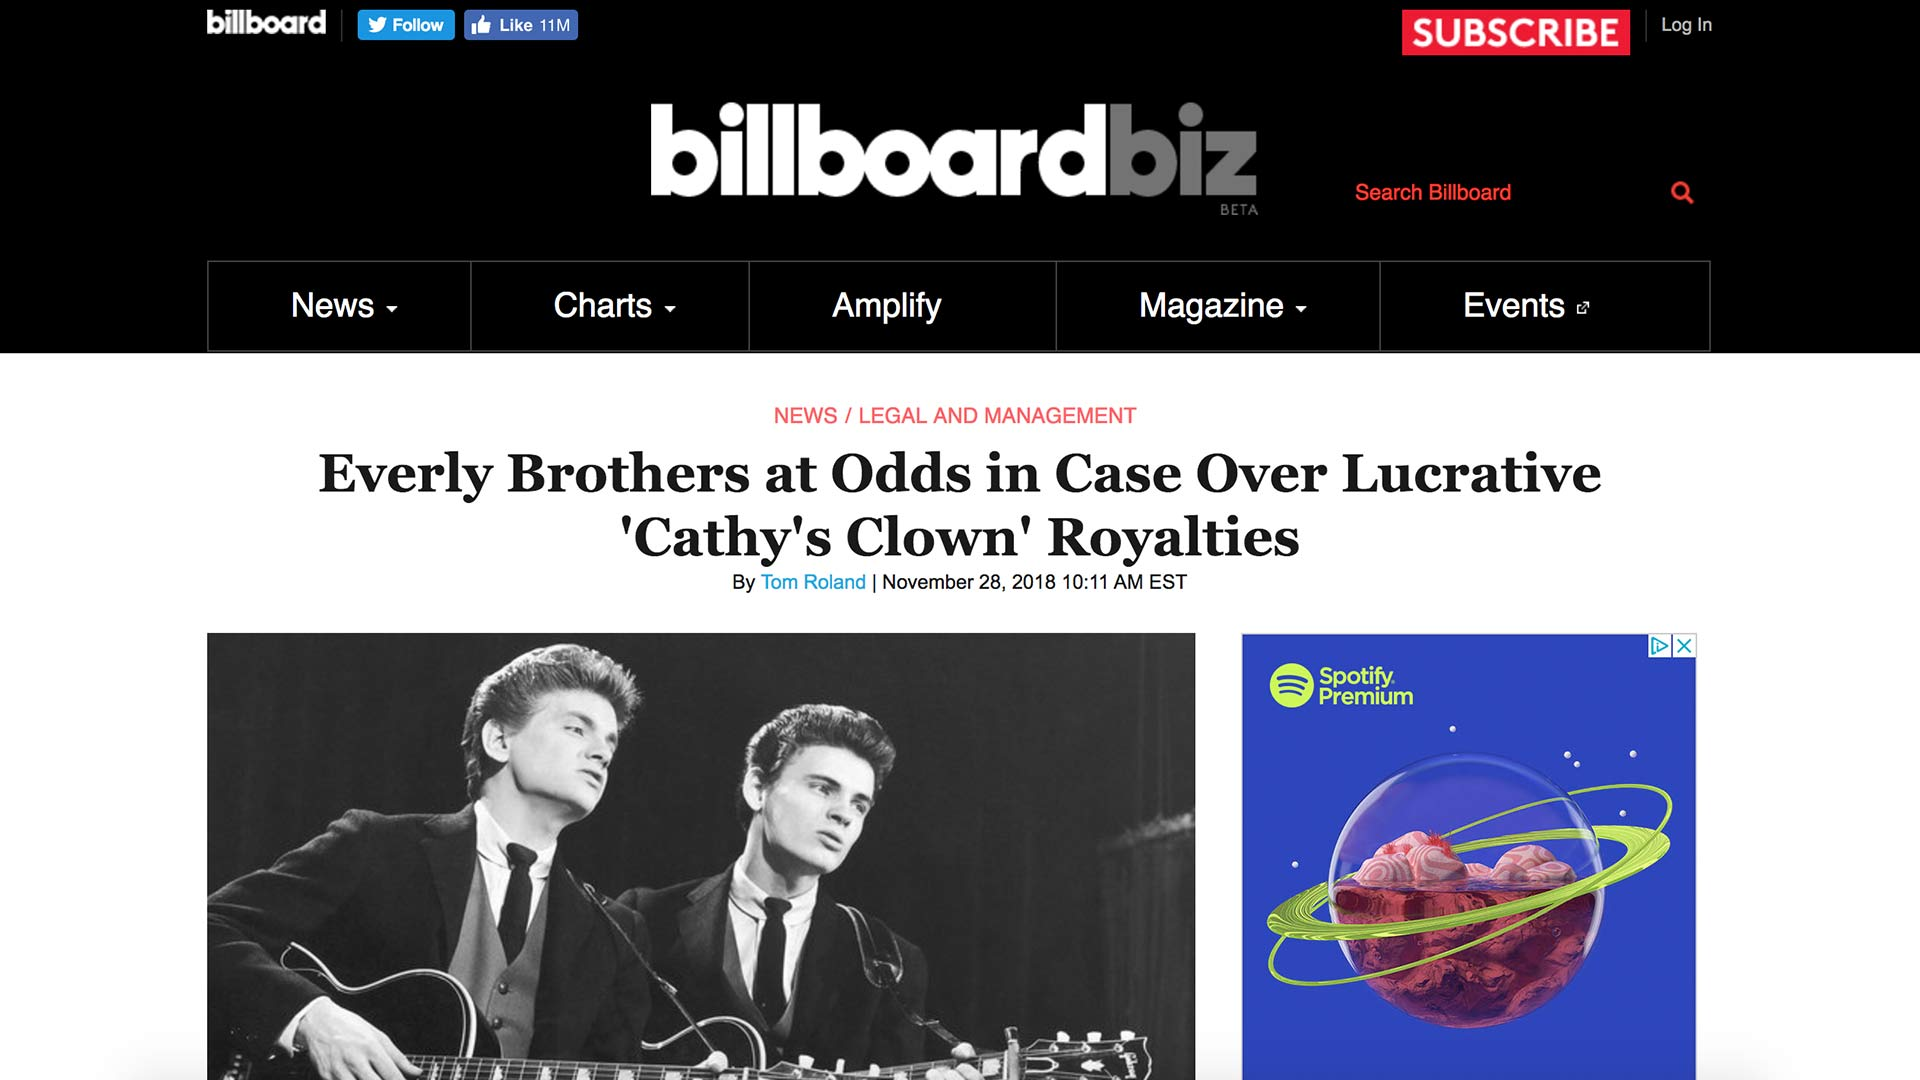 Fairness Rocks News Everly Brothers at Odds in Case Over Lucrative 'Cathy's Clown' Royalties